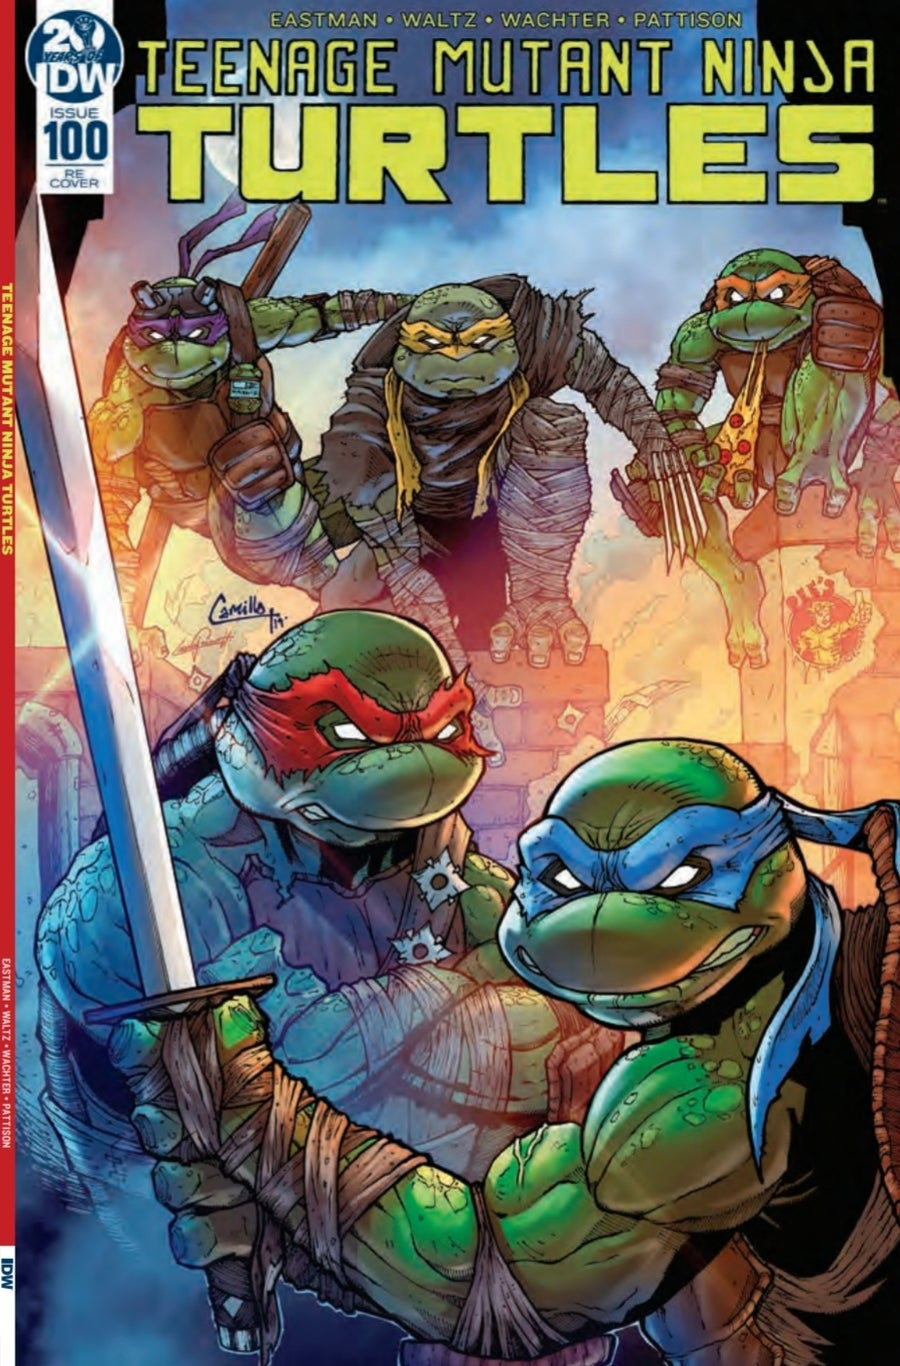 Image of TMNT issue 100 dee's comics retailer exclusive variant